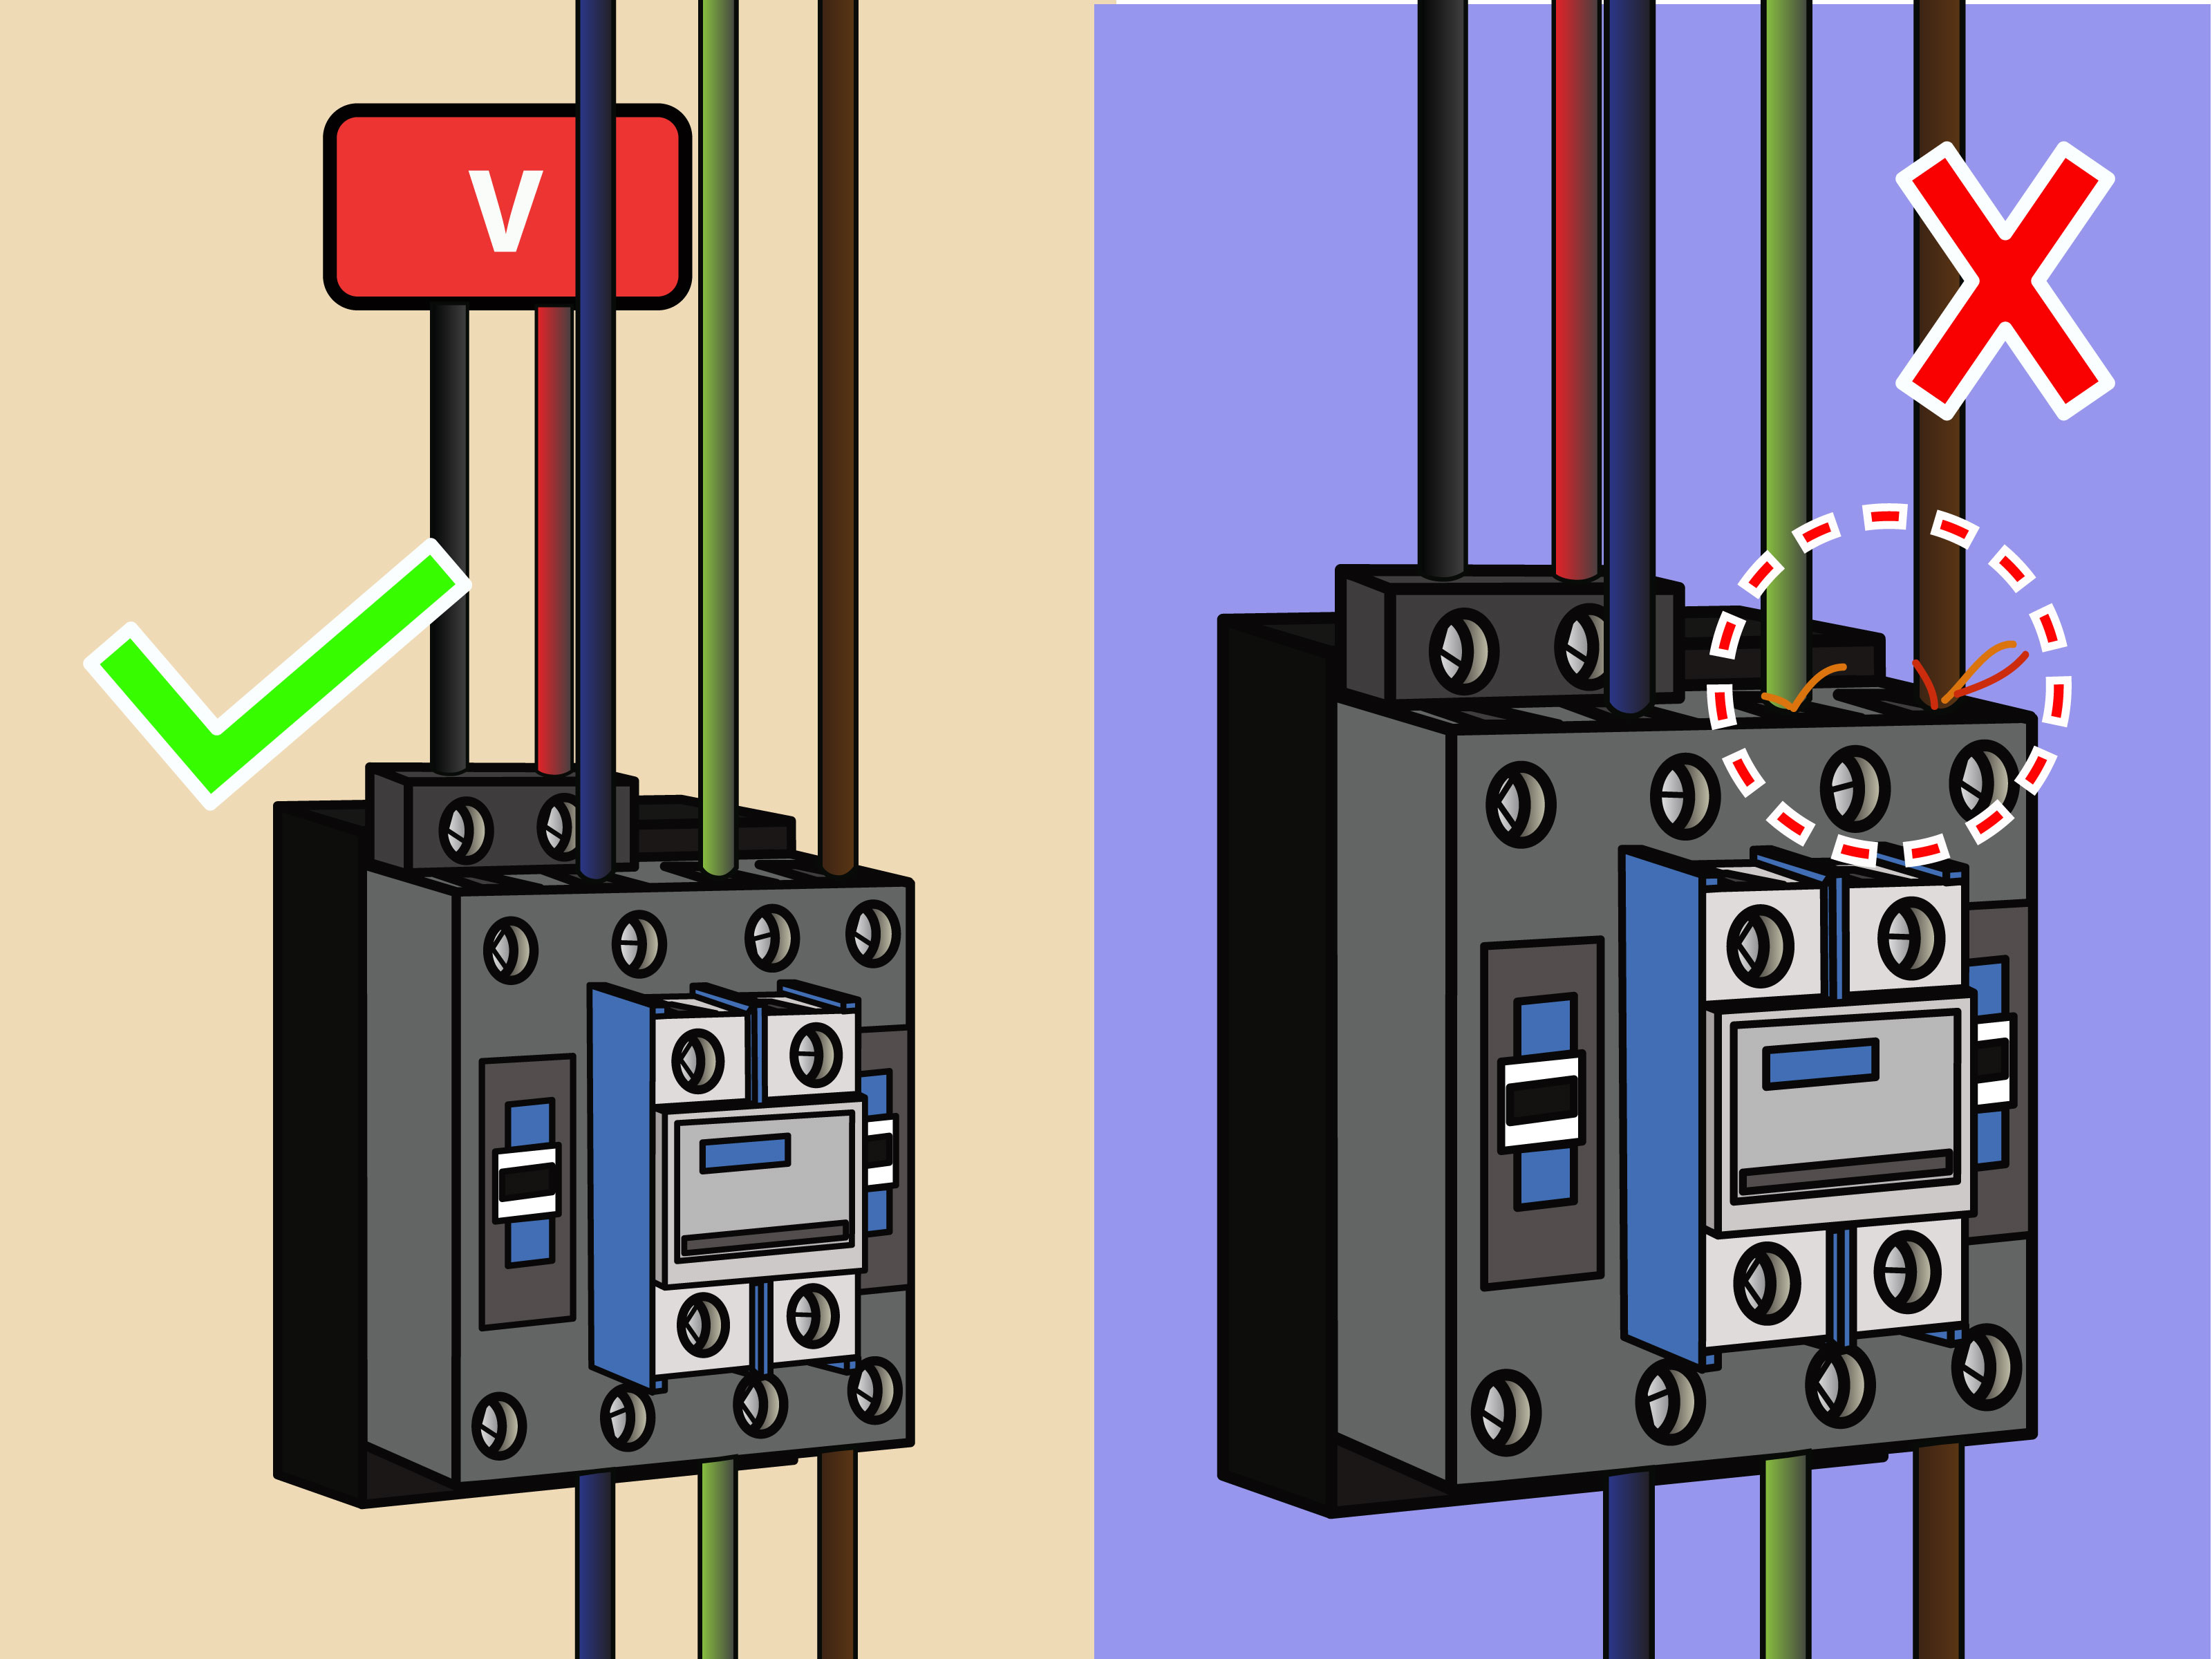 trane xe90 diagram all about repair and wiring collections trane xe diagram trane condenser wiring diagram nilzanet wire a contactor step 8 trane condenser